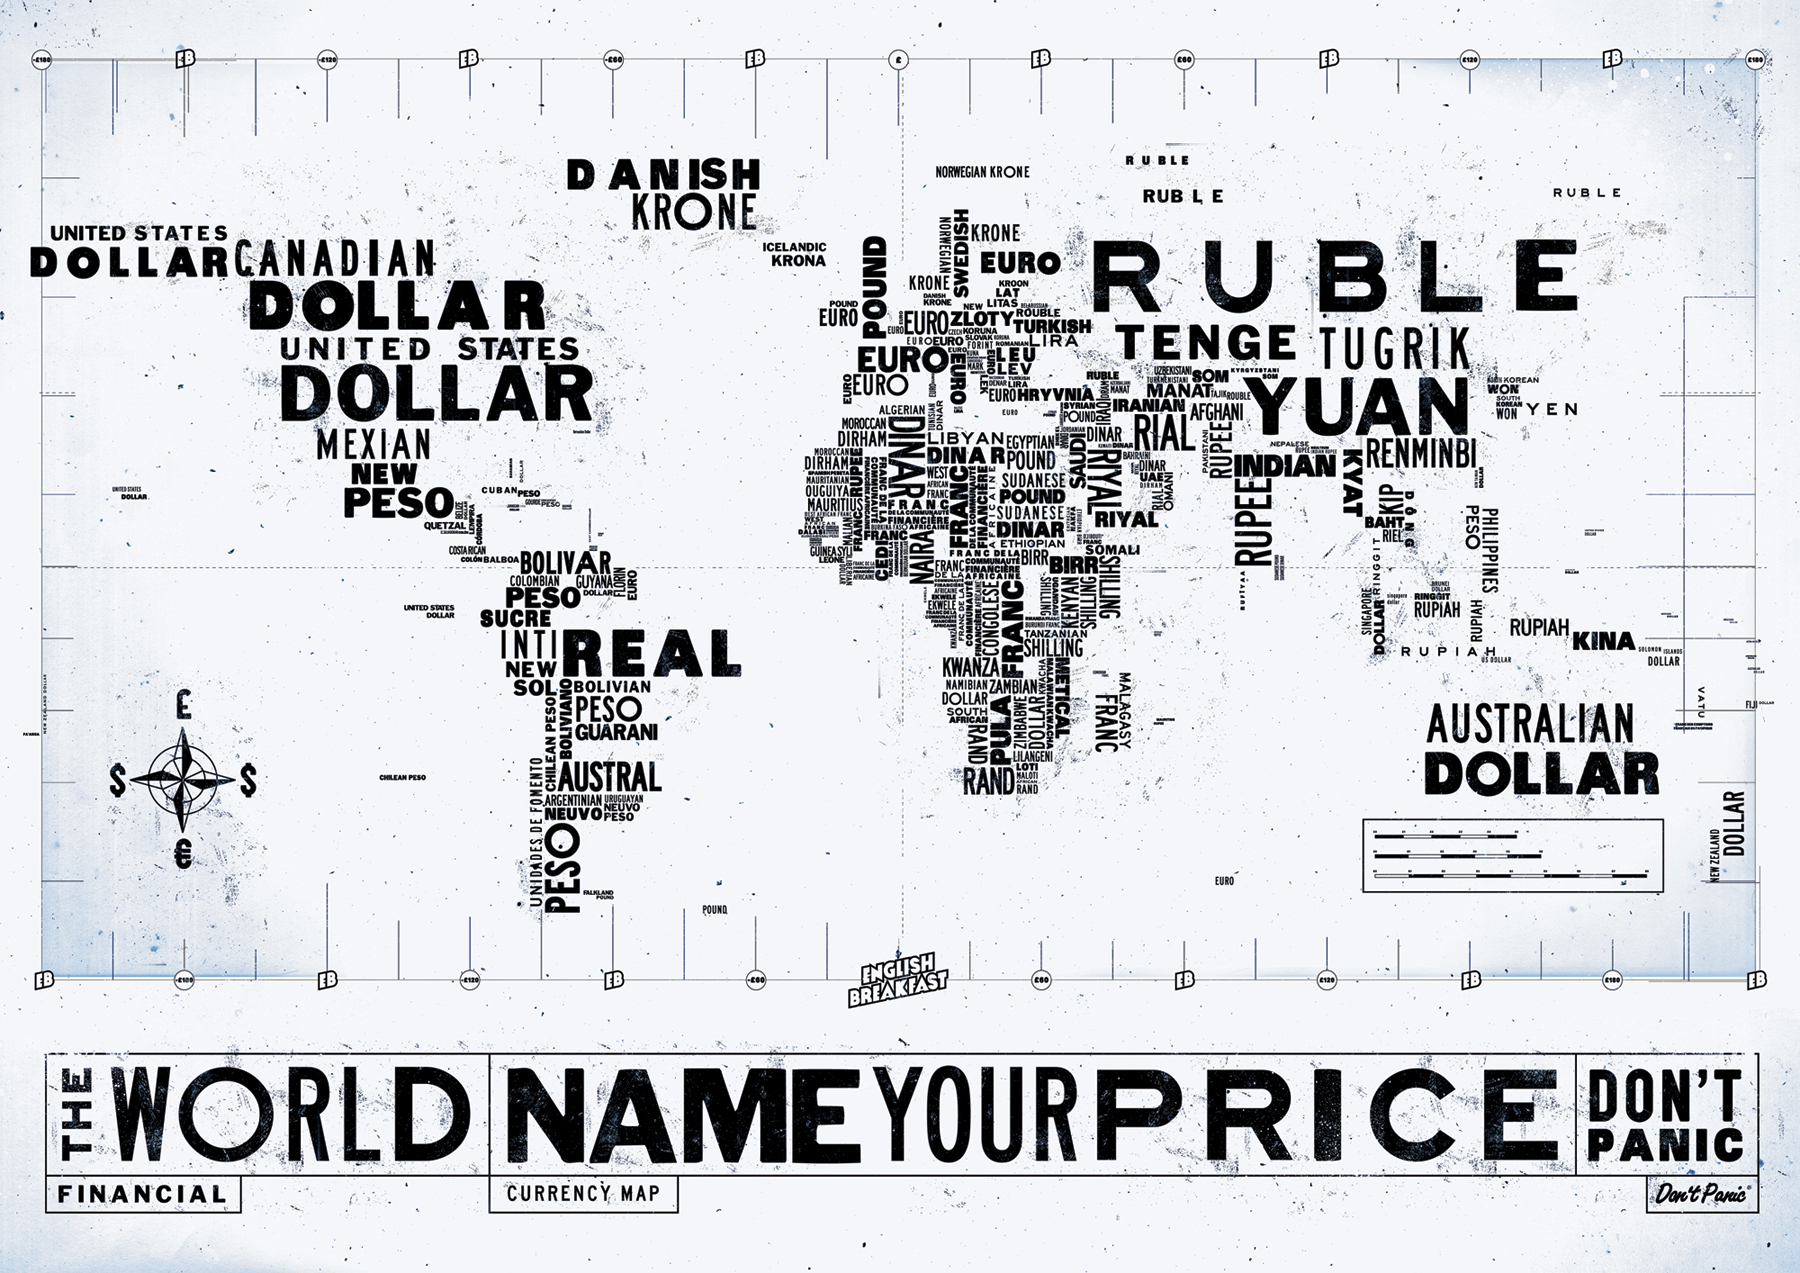 The Worlds Financial State. Just name your price and dont panic.